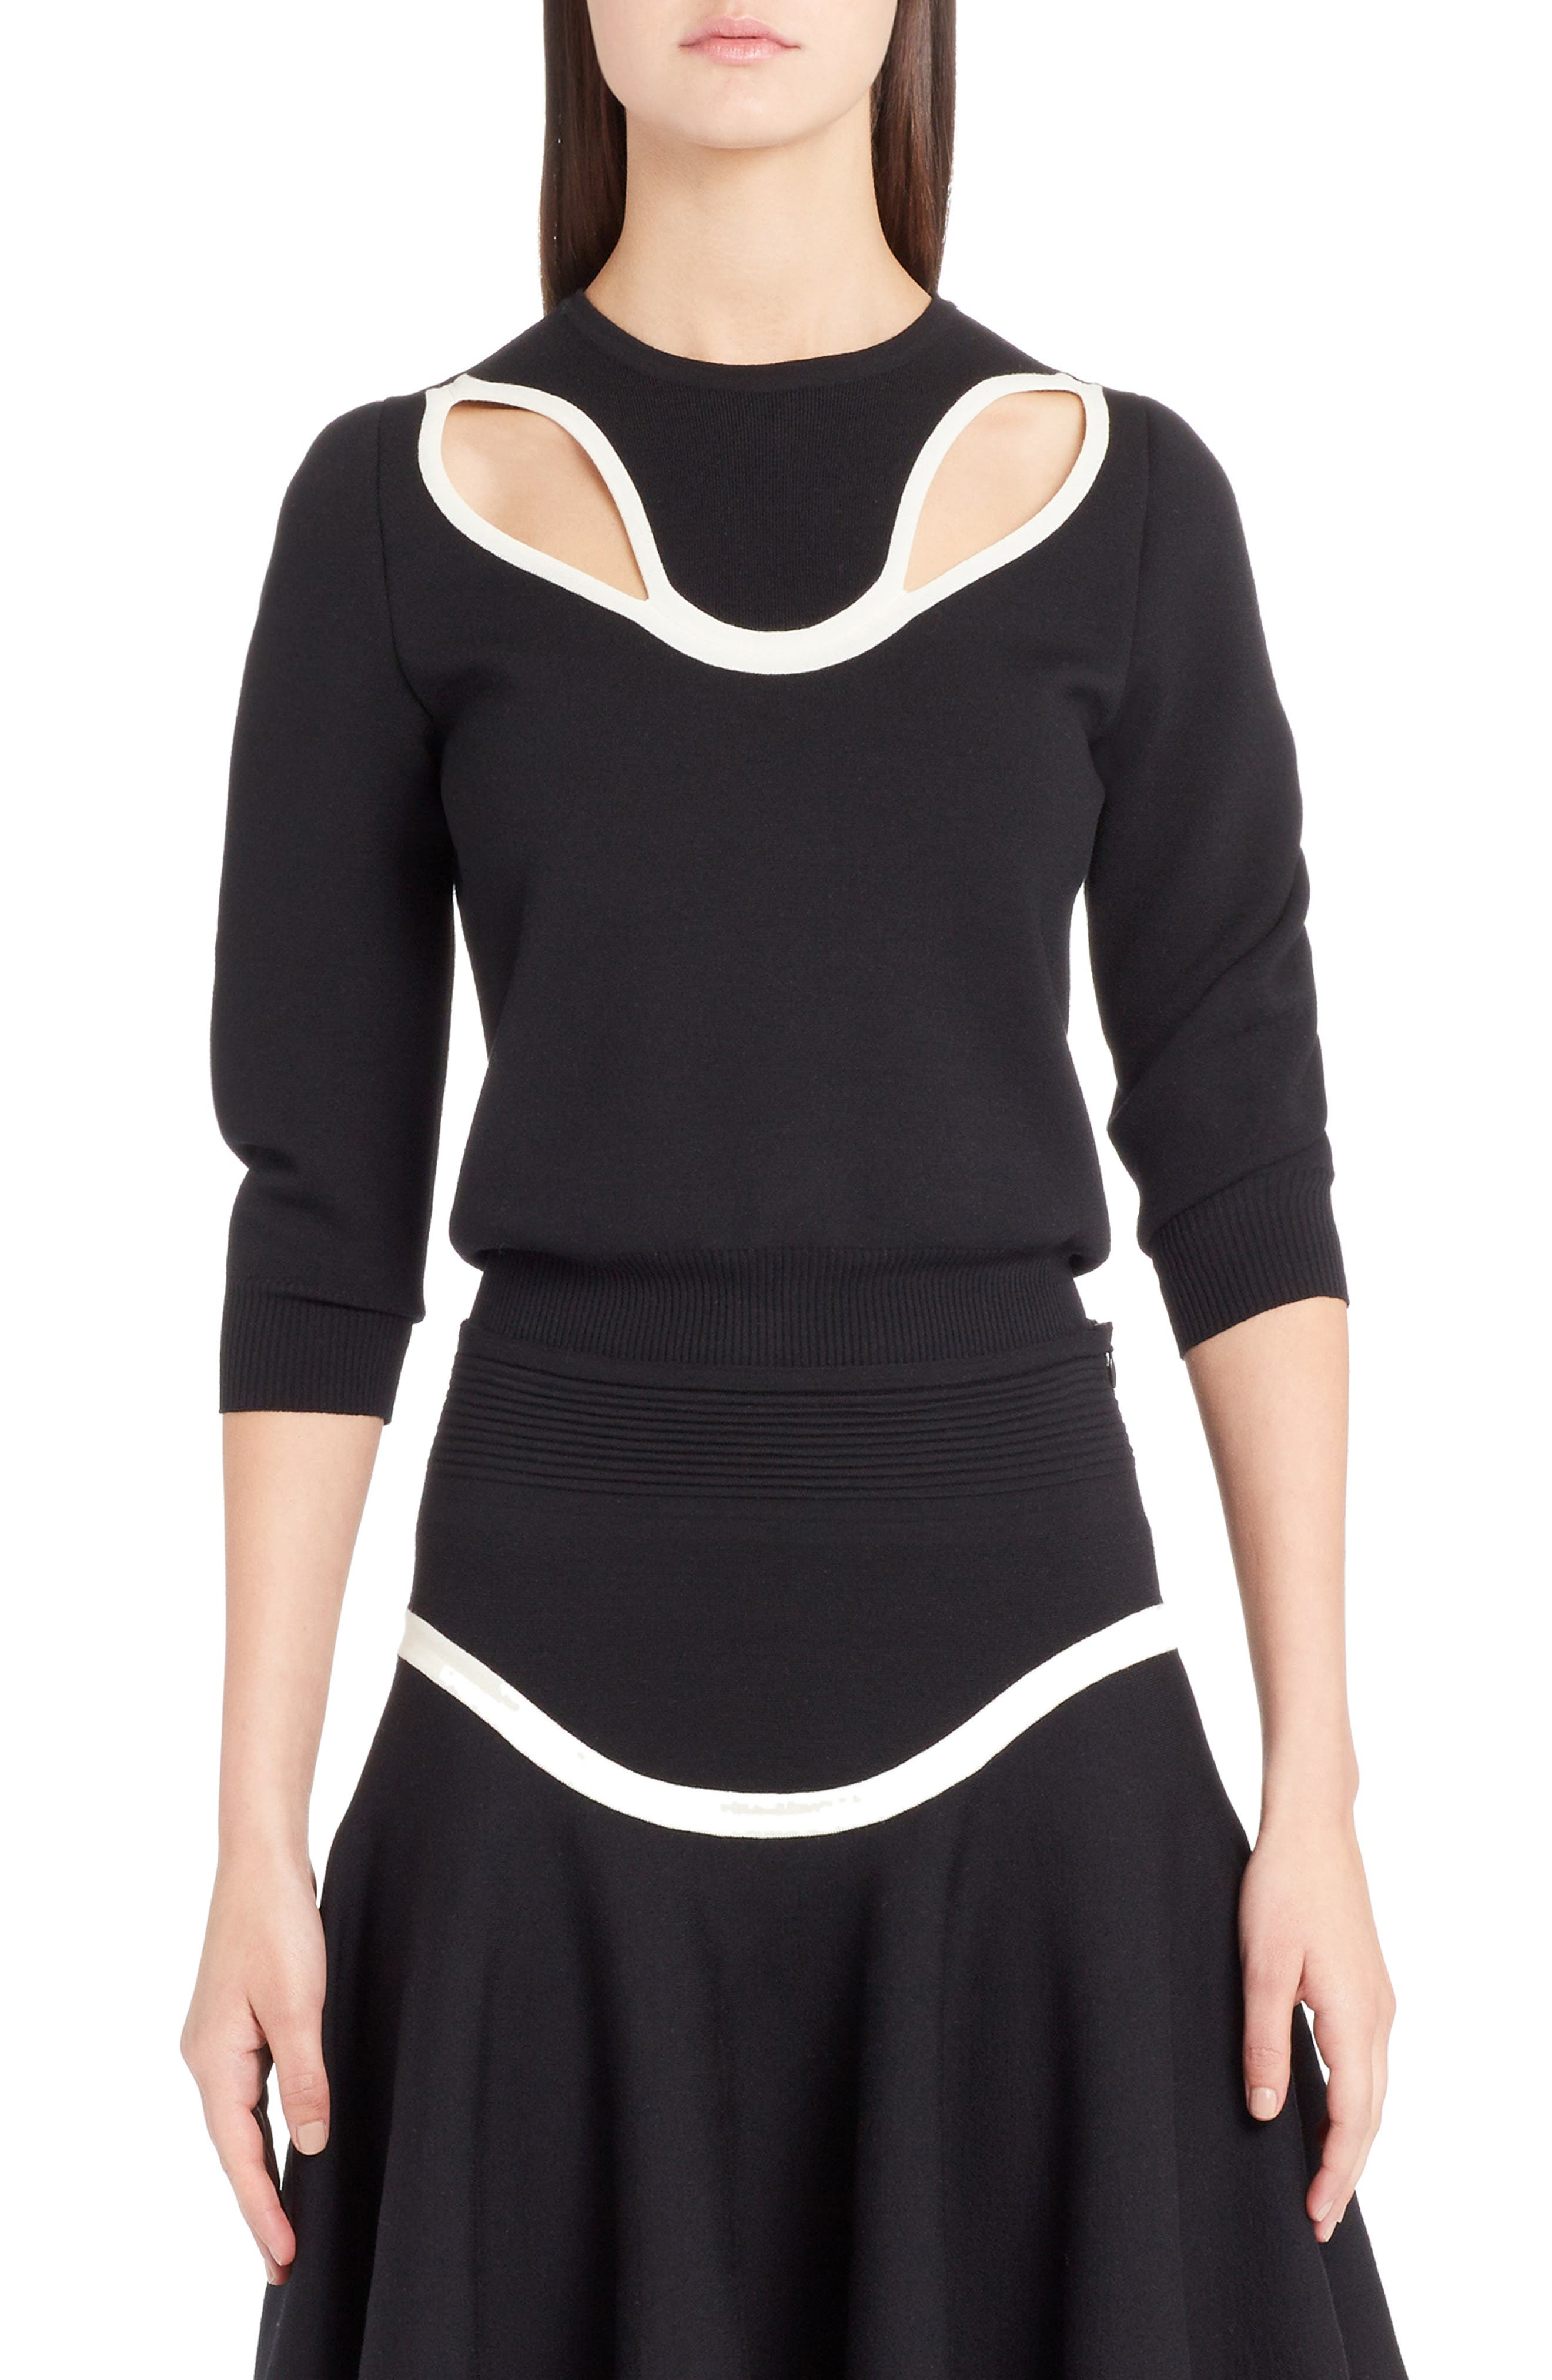 Graphic Cutout Sweater,                             Main thumbnail 1, color,                             BLACK/ IVORY